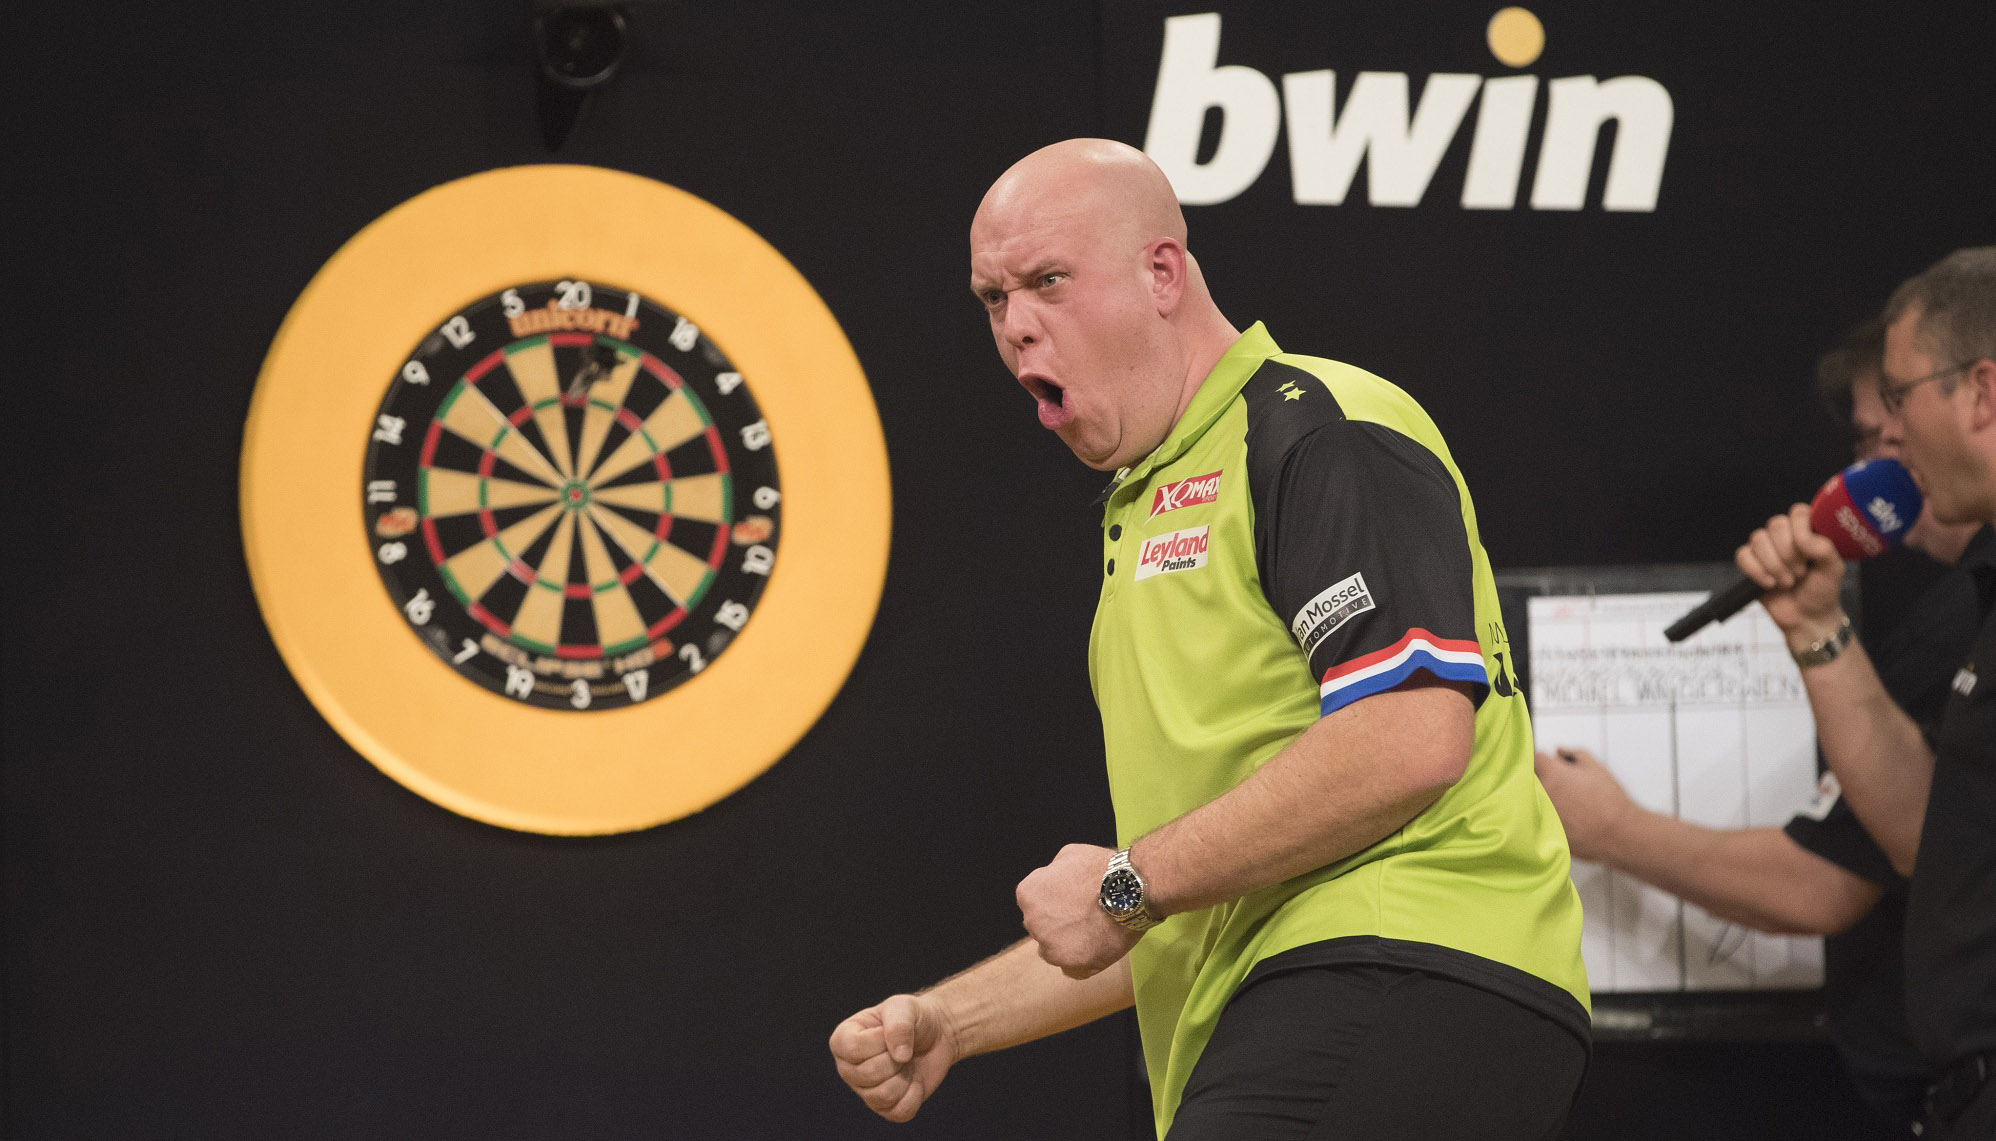 Bwin Grand Slam of Darts: Semi-final tips from Wolverhampton